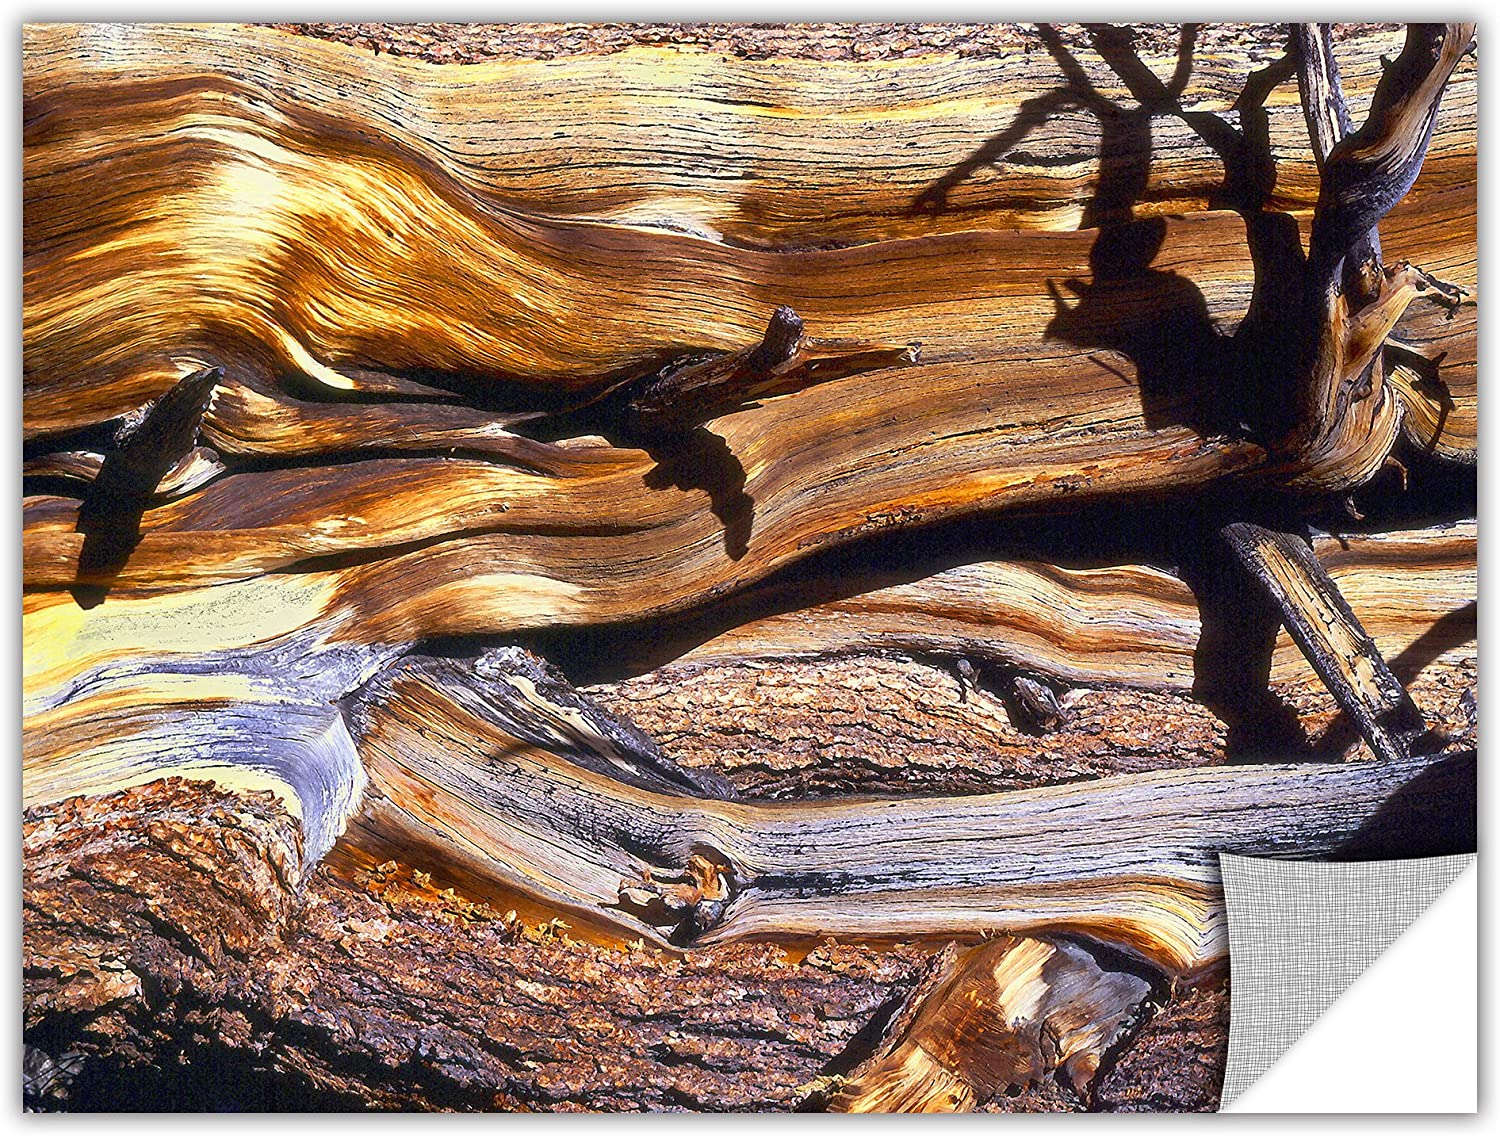 ArtWall Ancient Bristlecone Removable Wall Art by Dean Uhlinger, 18 by 24Inch